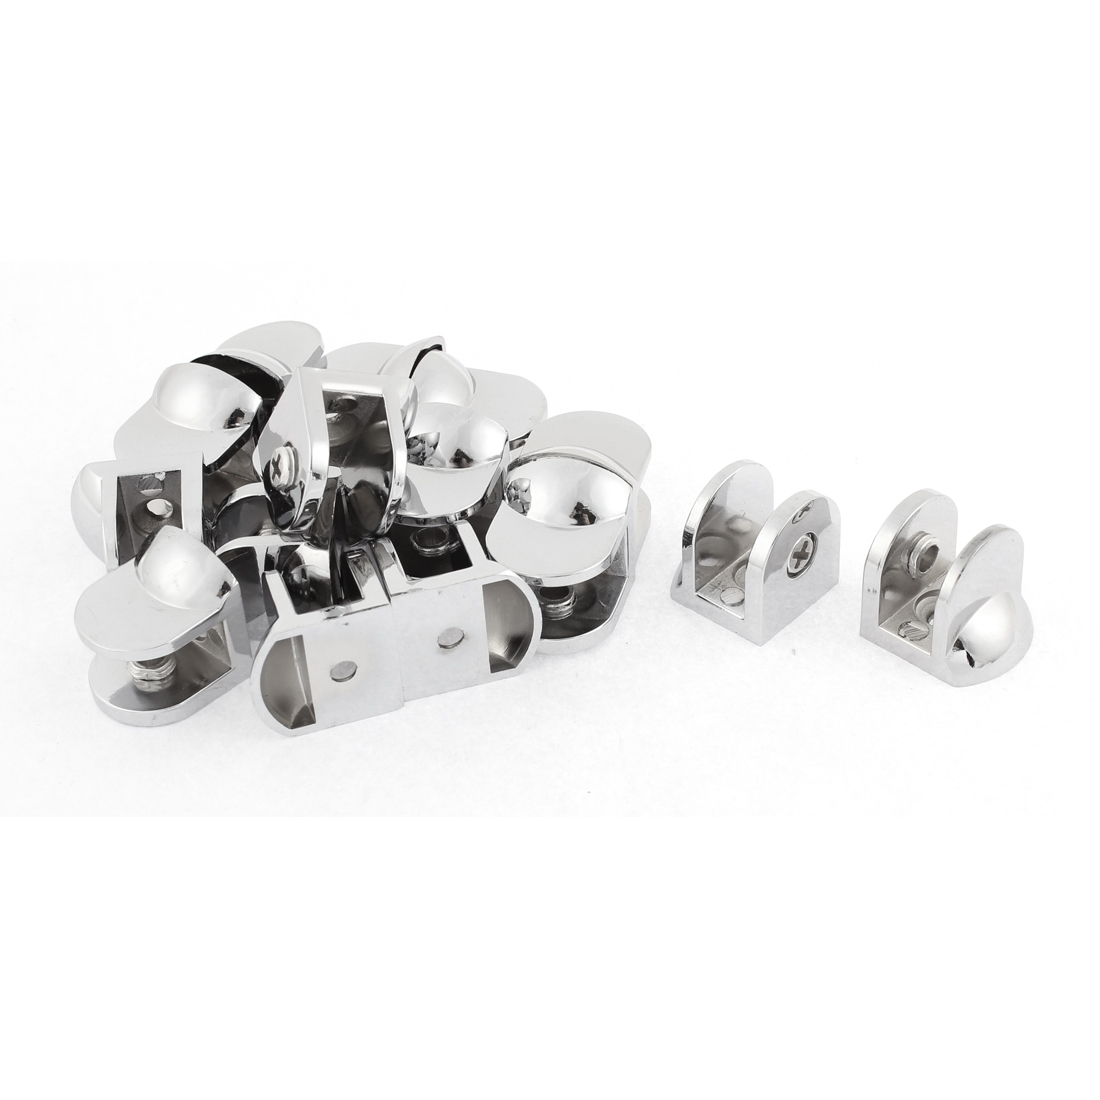 Semicircle Adjustable 8-10mm Thickness Glass Clip Clamp Bracket Support 16pcs